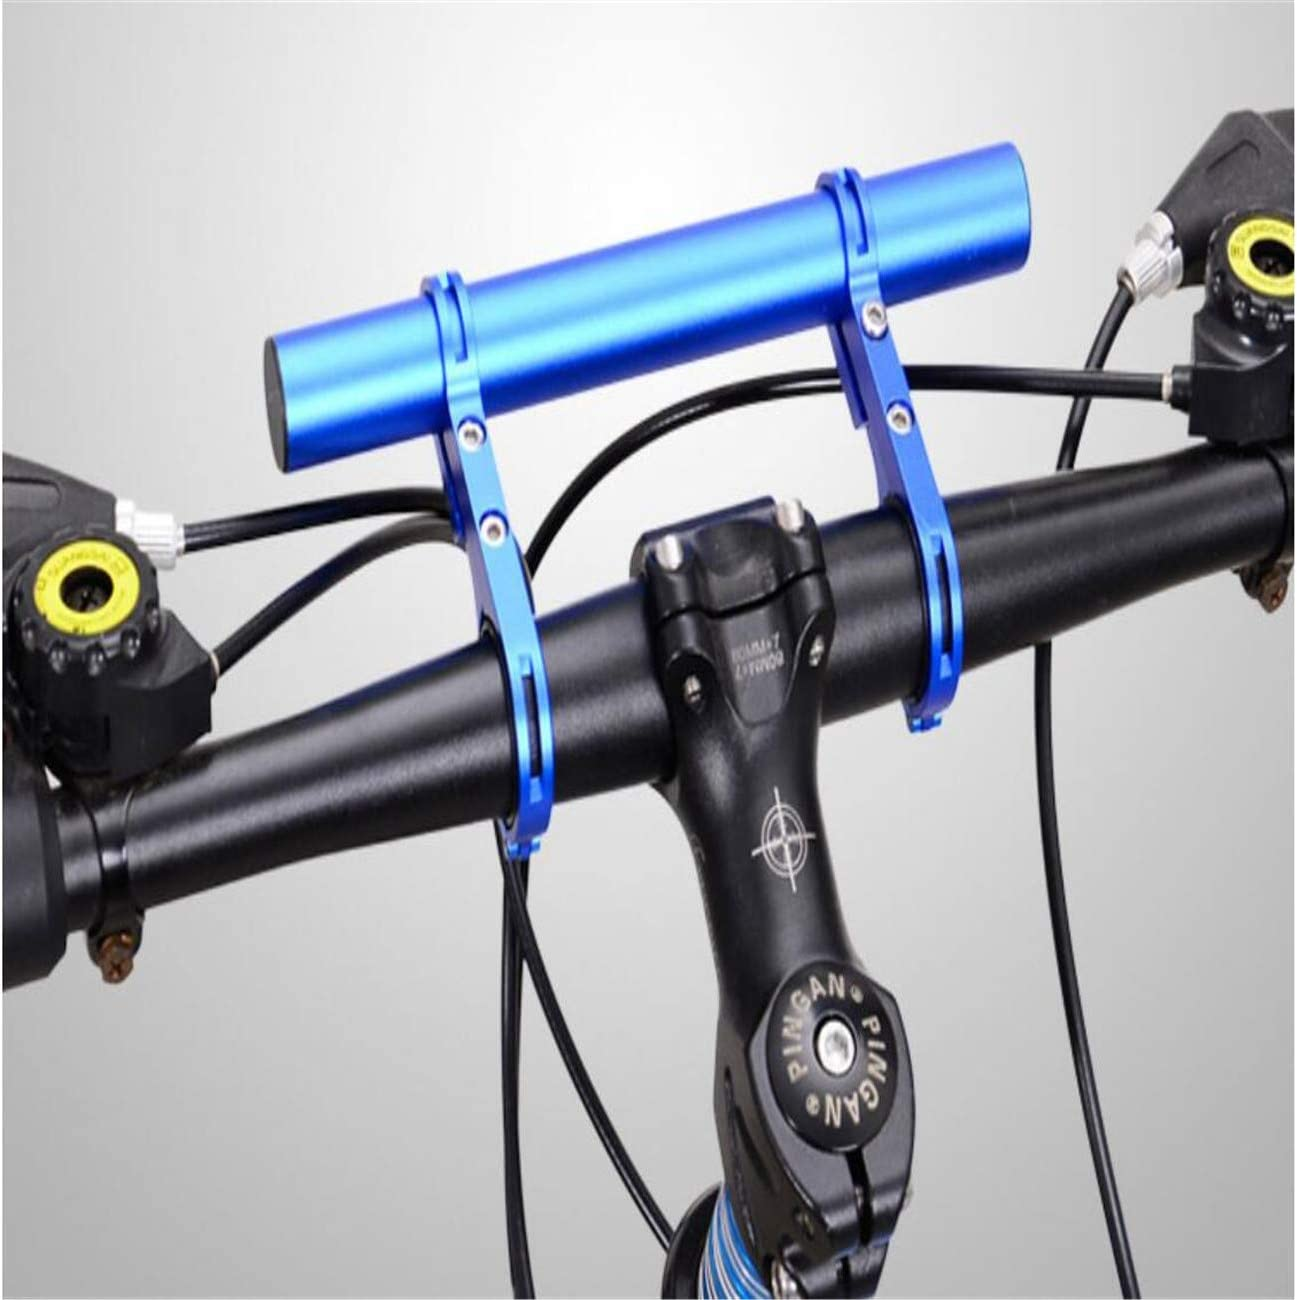 AXIONG Black 4 inches Bike Handlebar Extender Aluminum Alloy Bicycle Handlebar Extension for Holding Speedometer Flashlight Cell Phone Mount Holder There is Also a Chain Cleaning Brush Inside